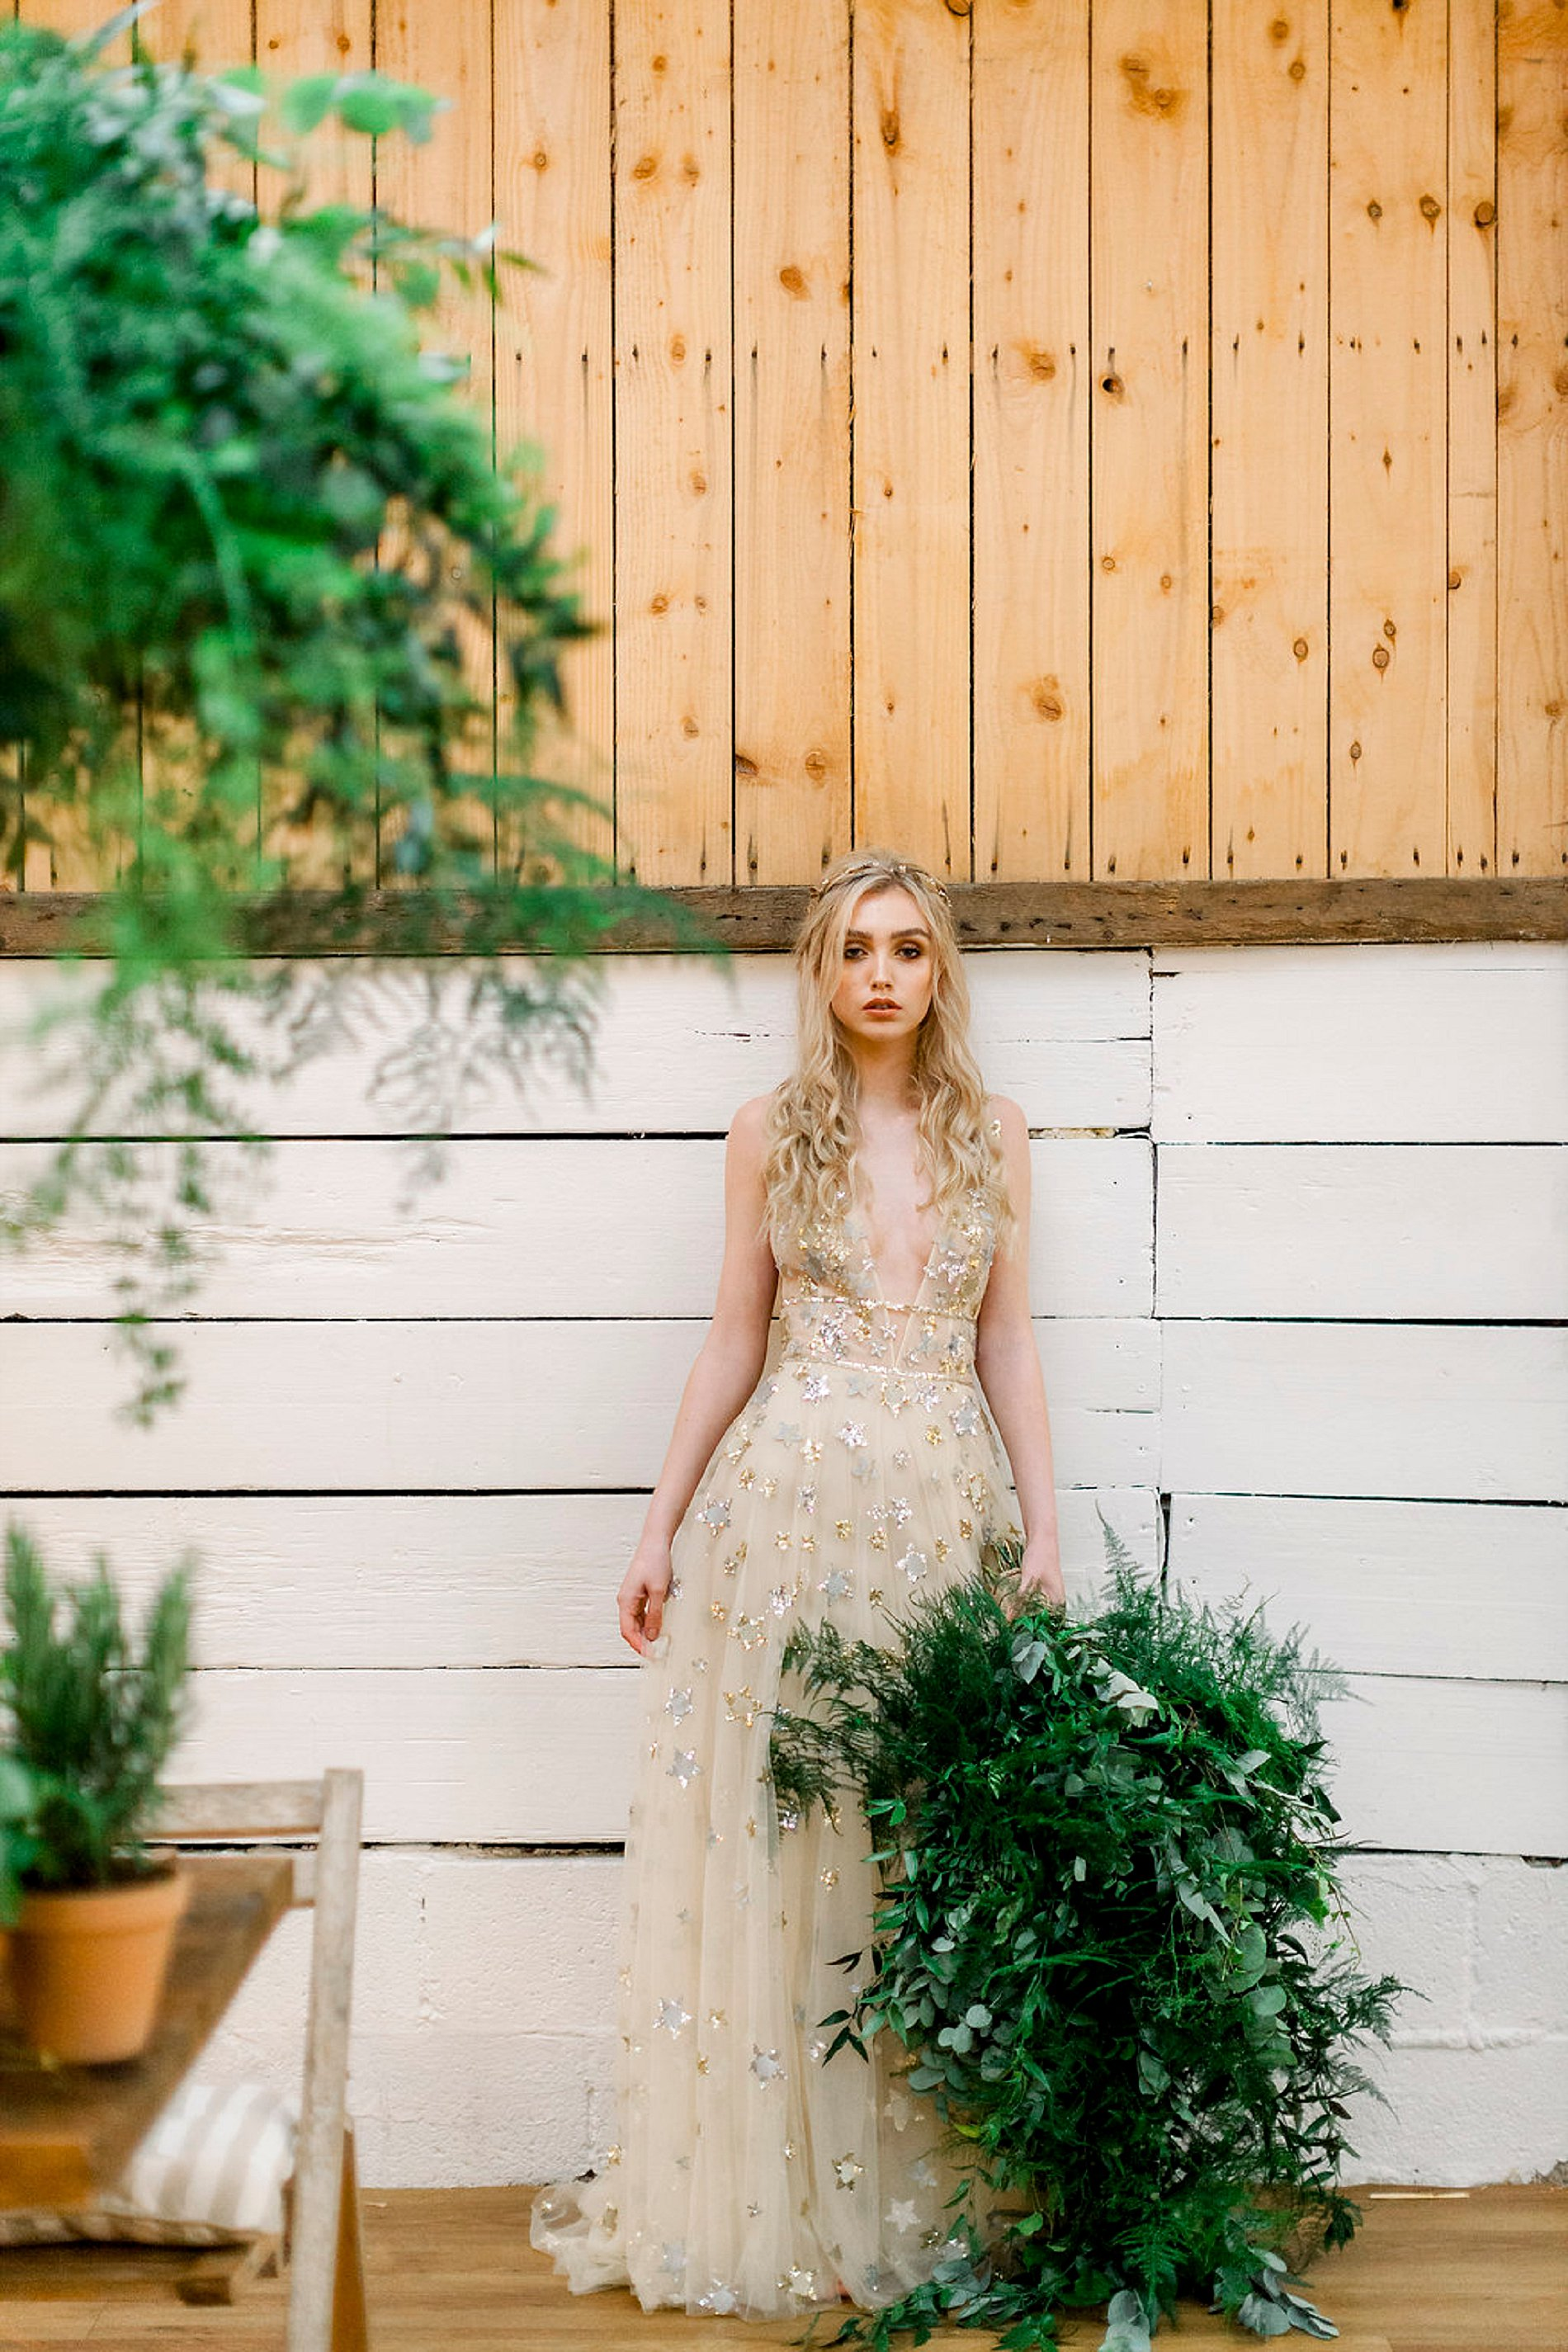 Super Natural Creative Bridal Editorial (c) Jo Bradbury (5)